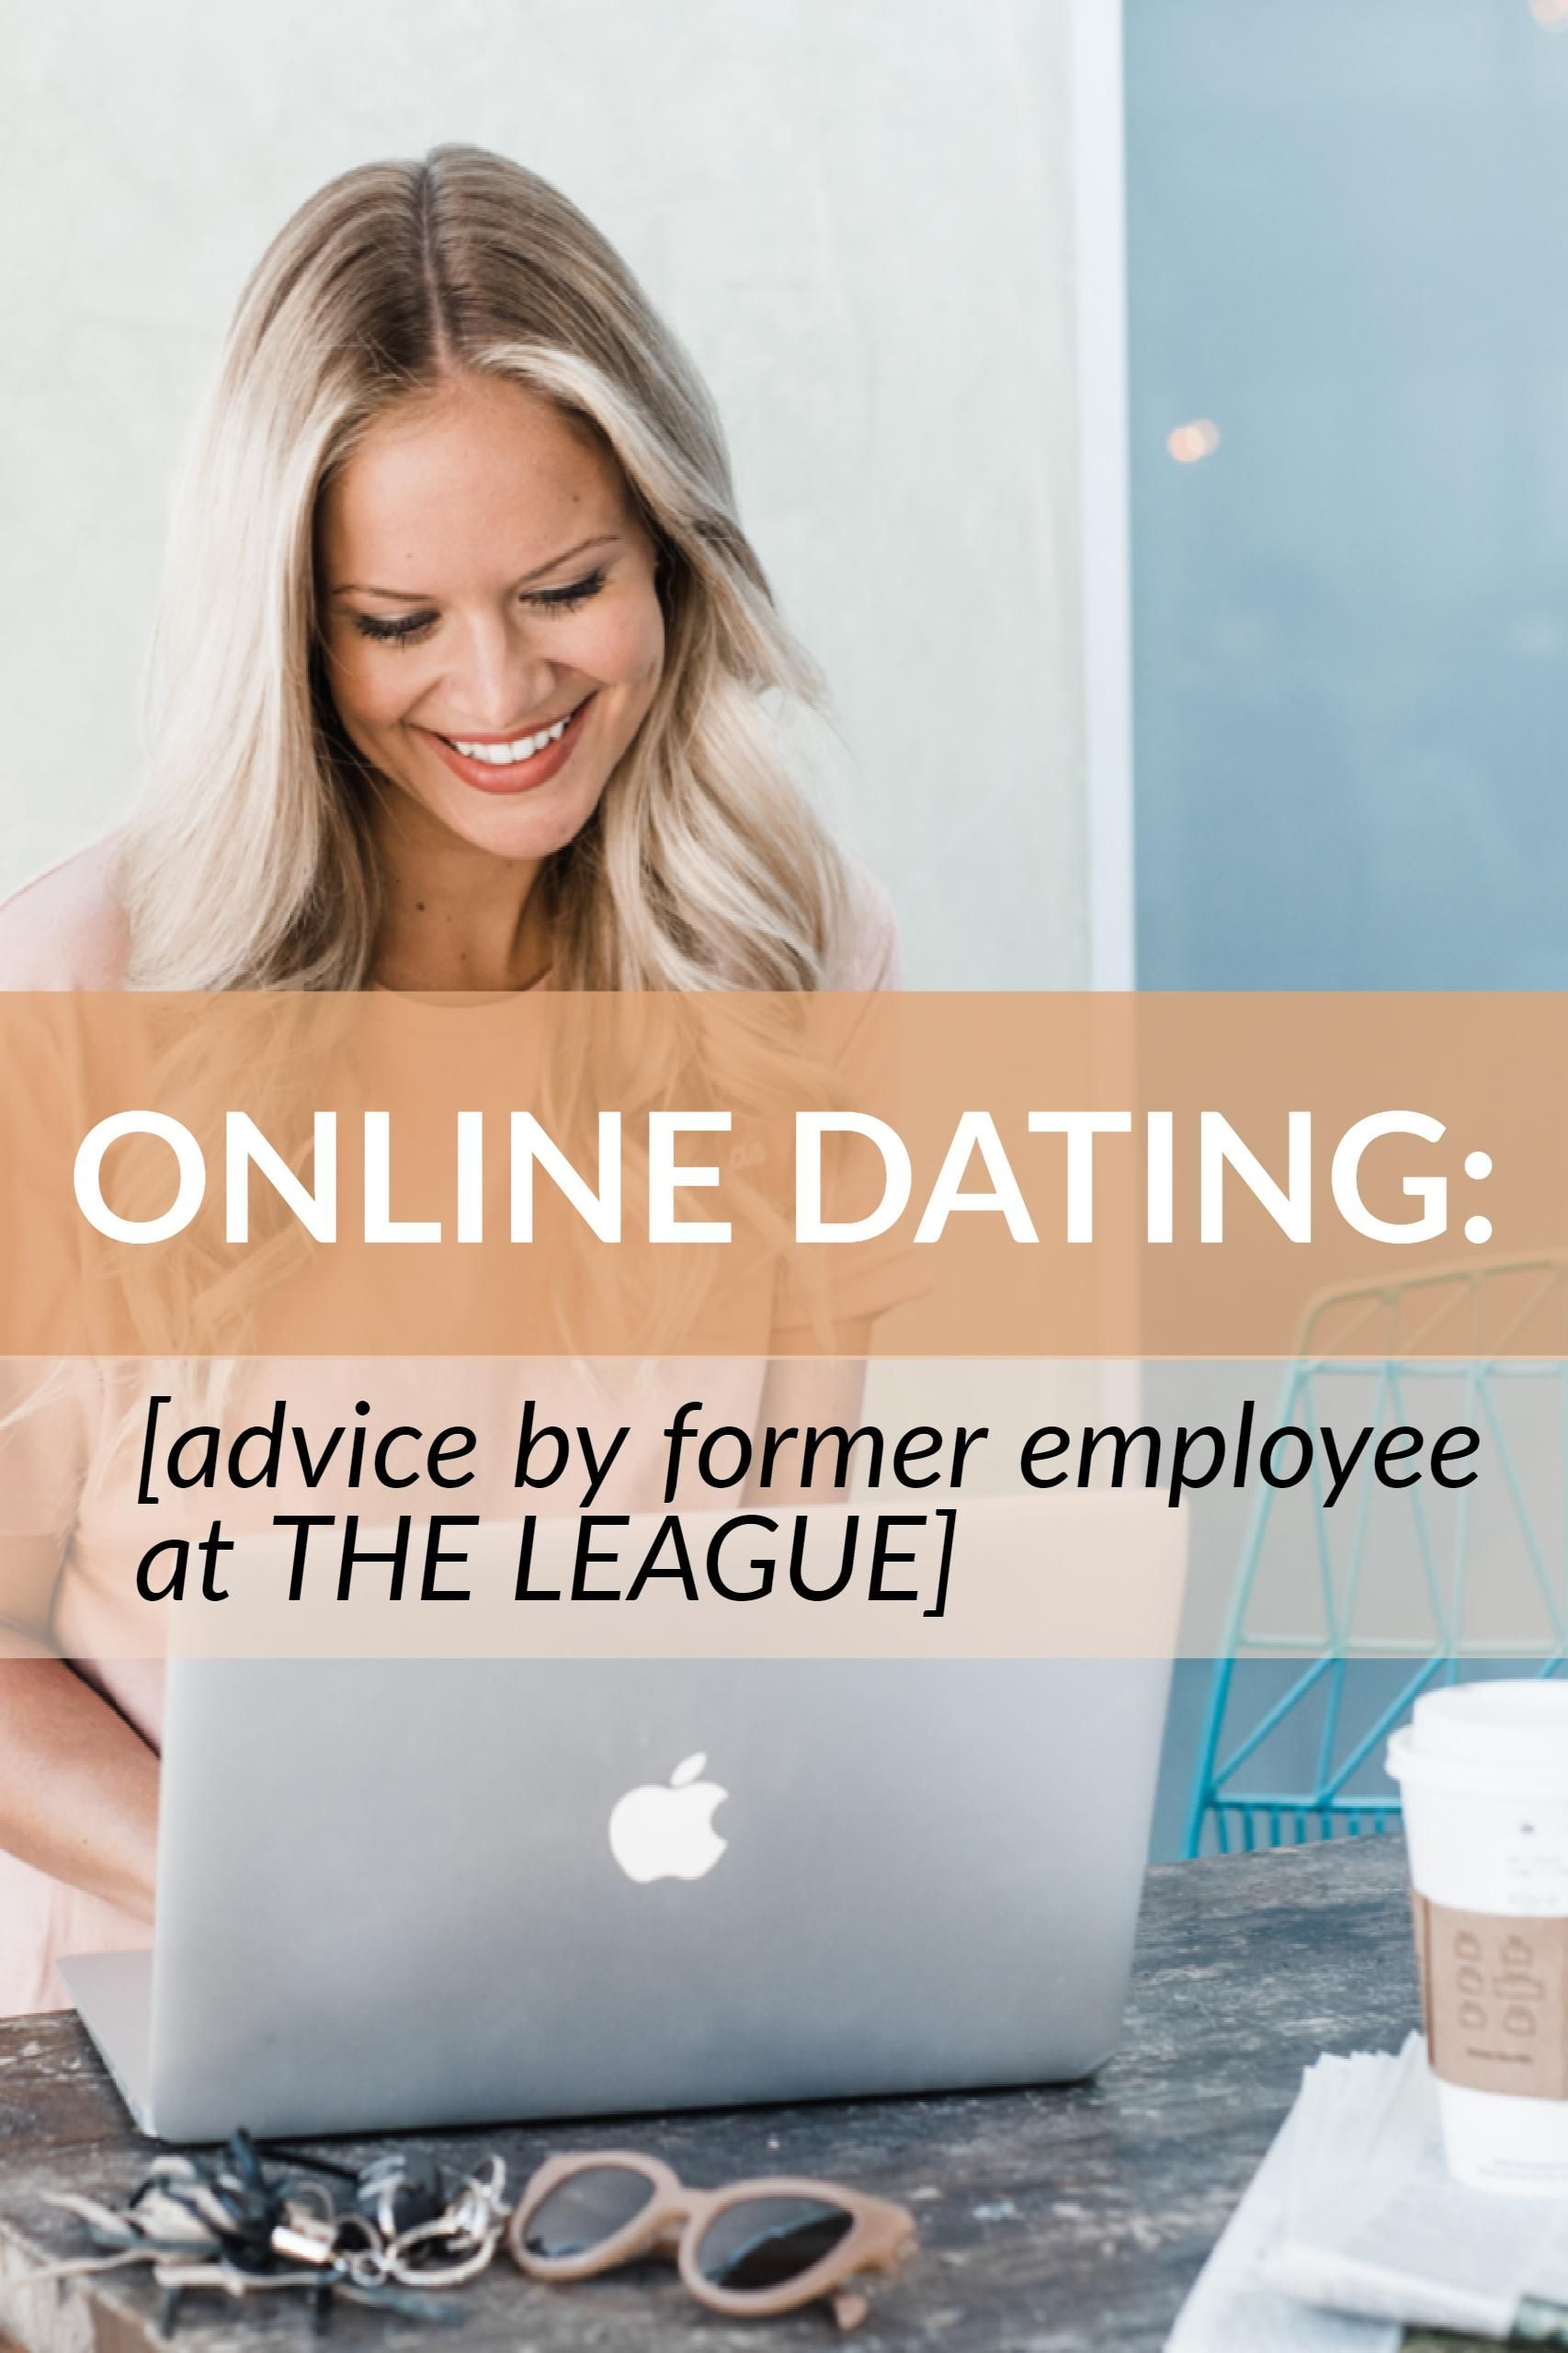 Online dating the league